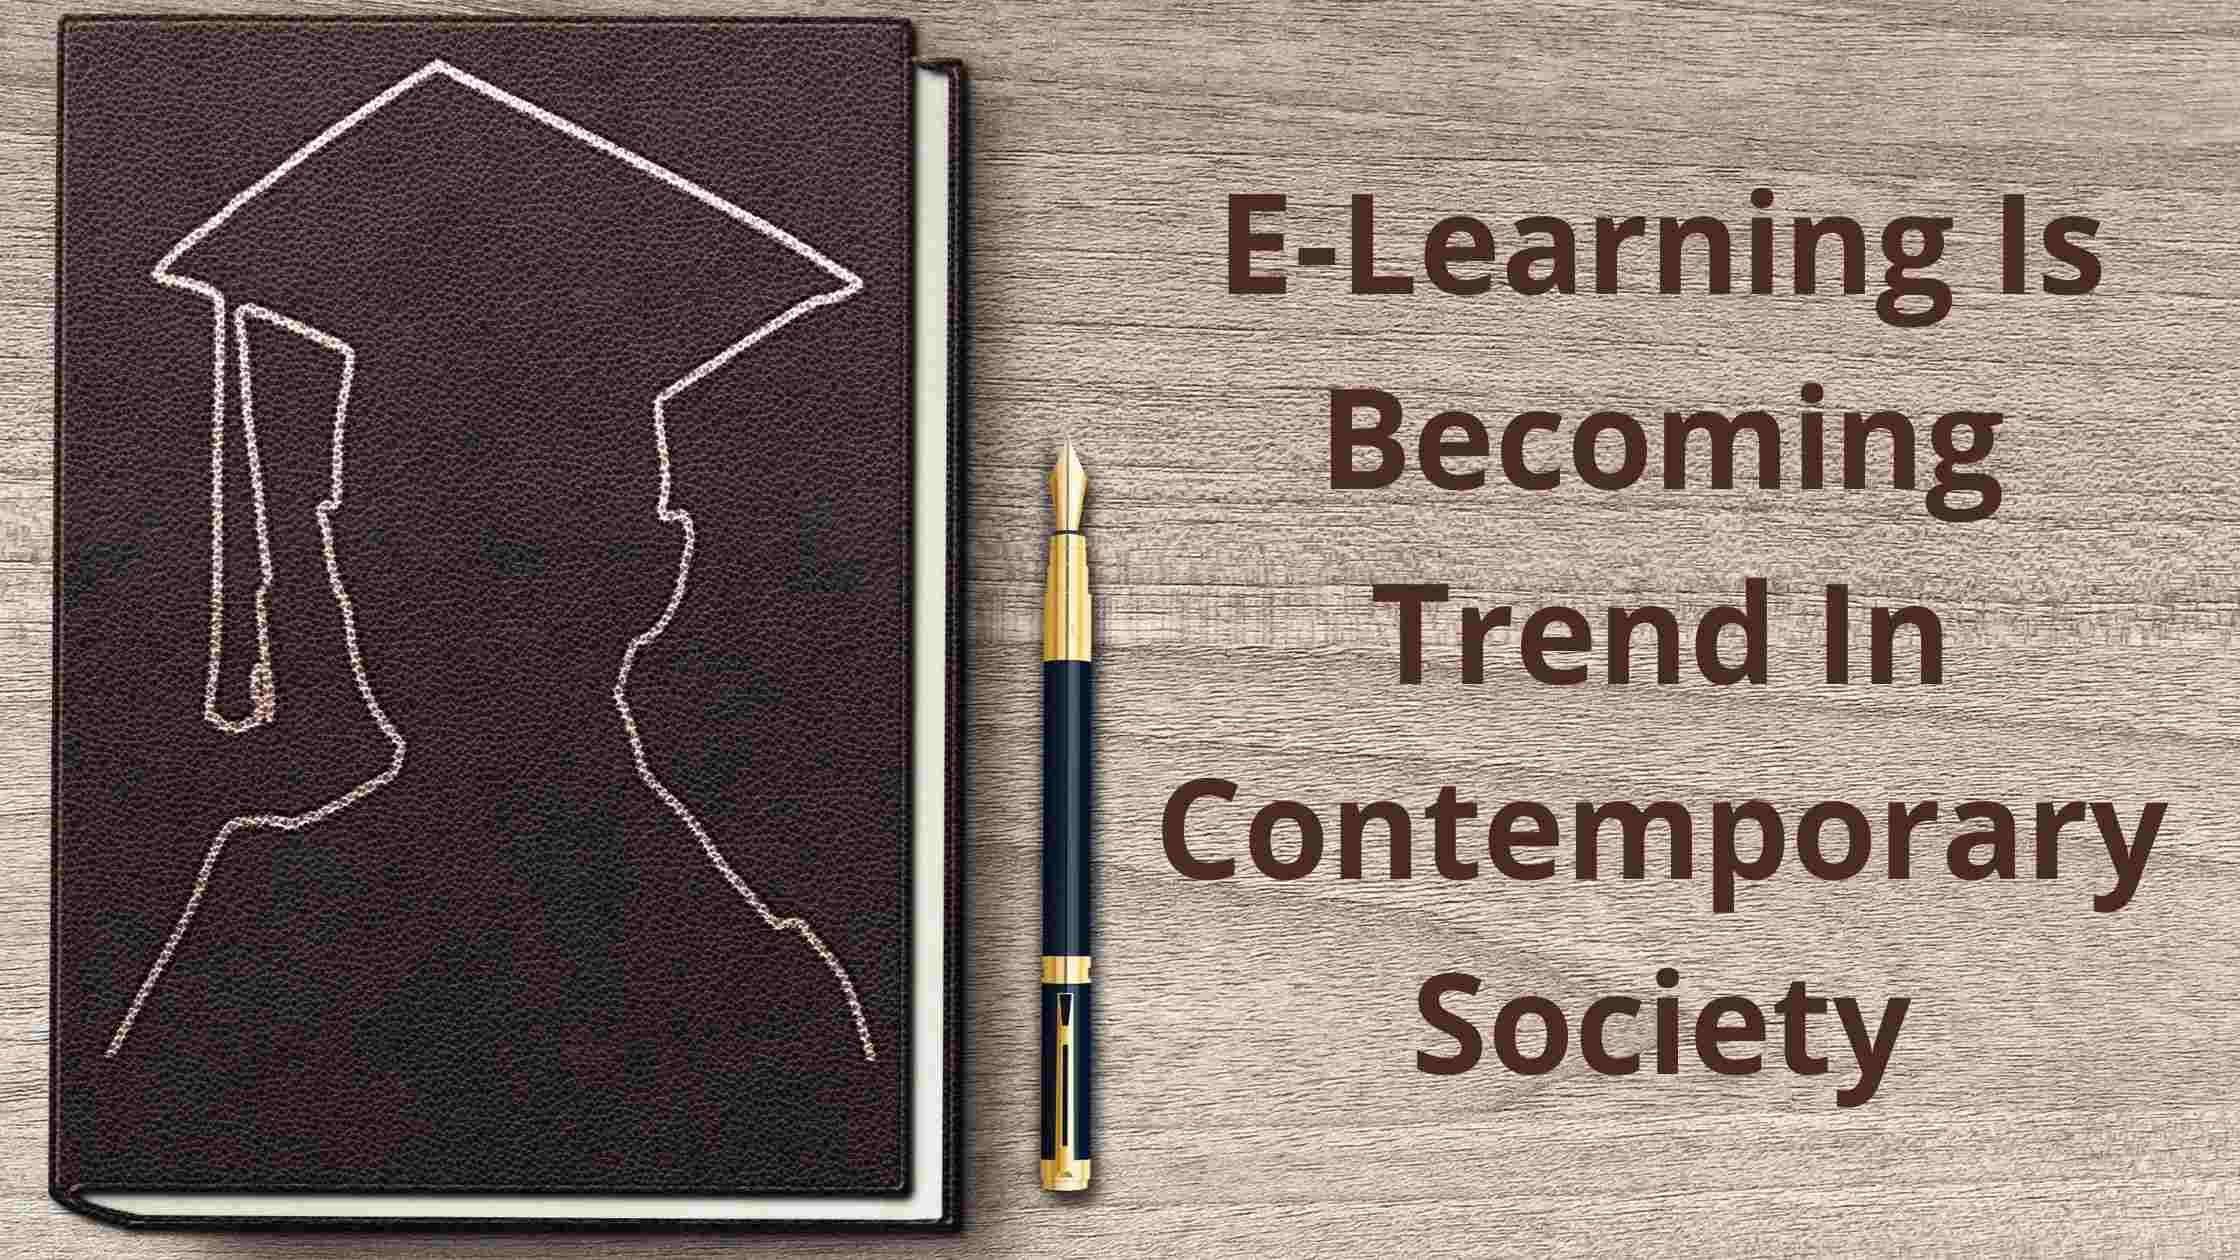 Why Is E-Learning In Trend In Contemporary Society?